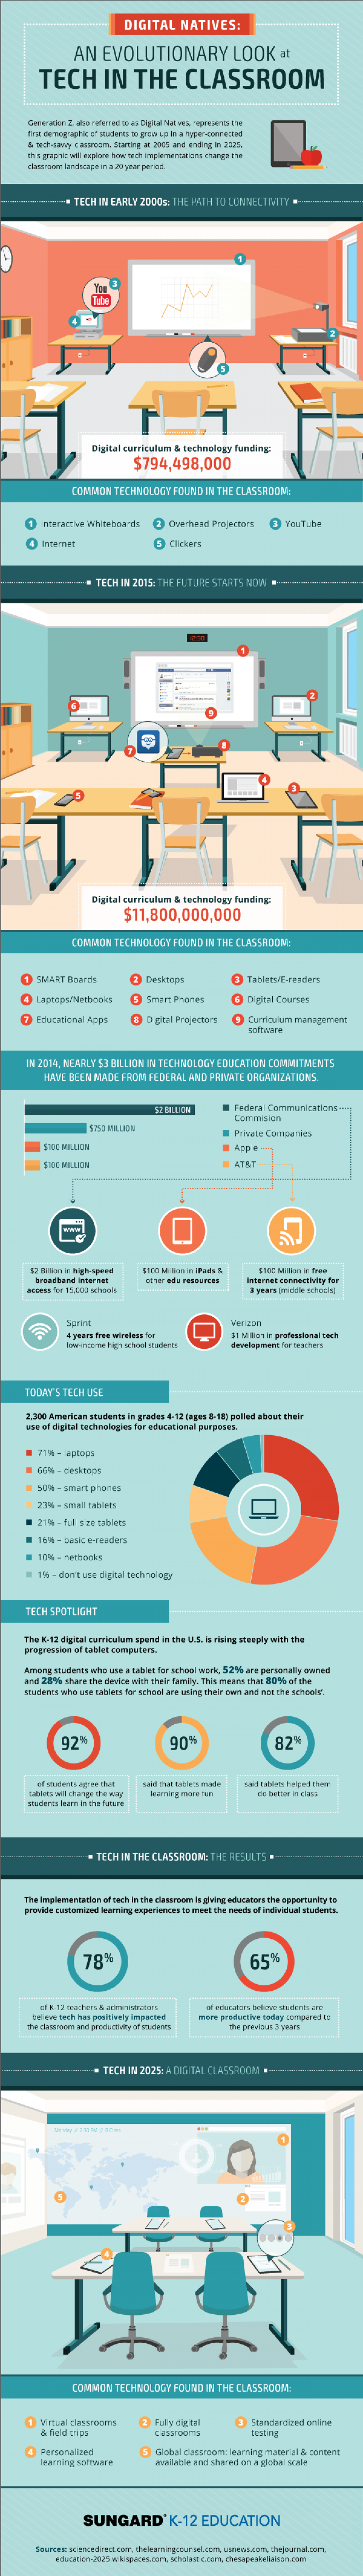 An Evolutionary Look at Tech in the Classroom Infographic